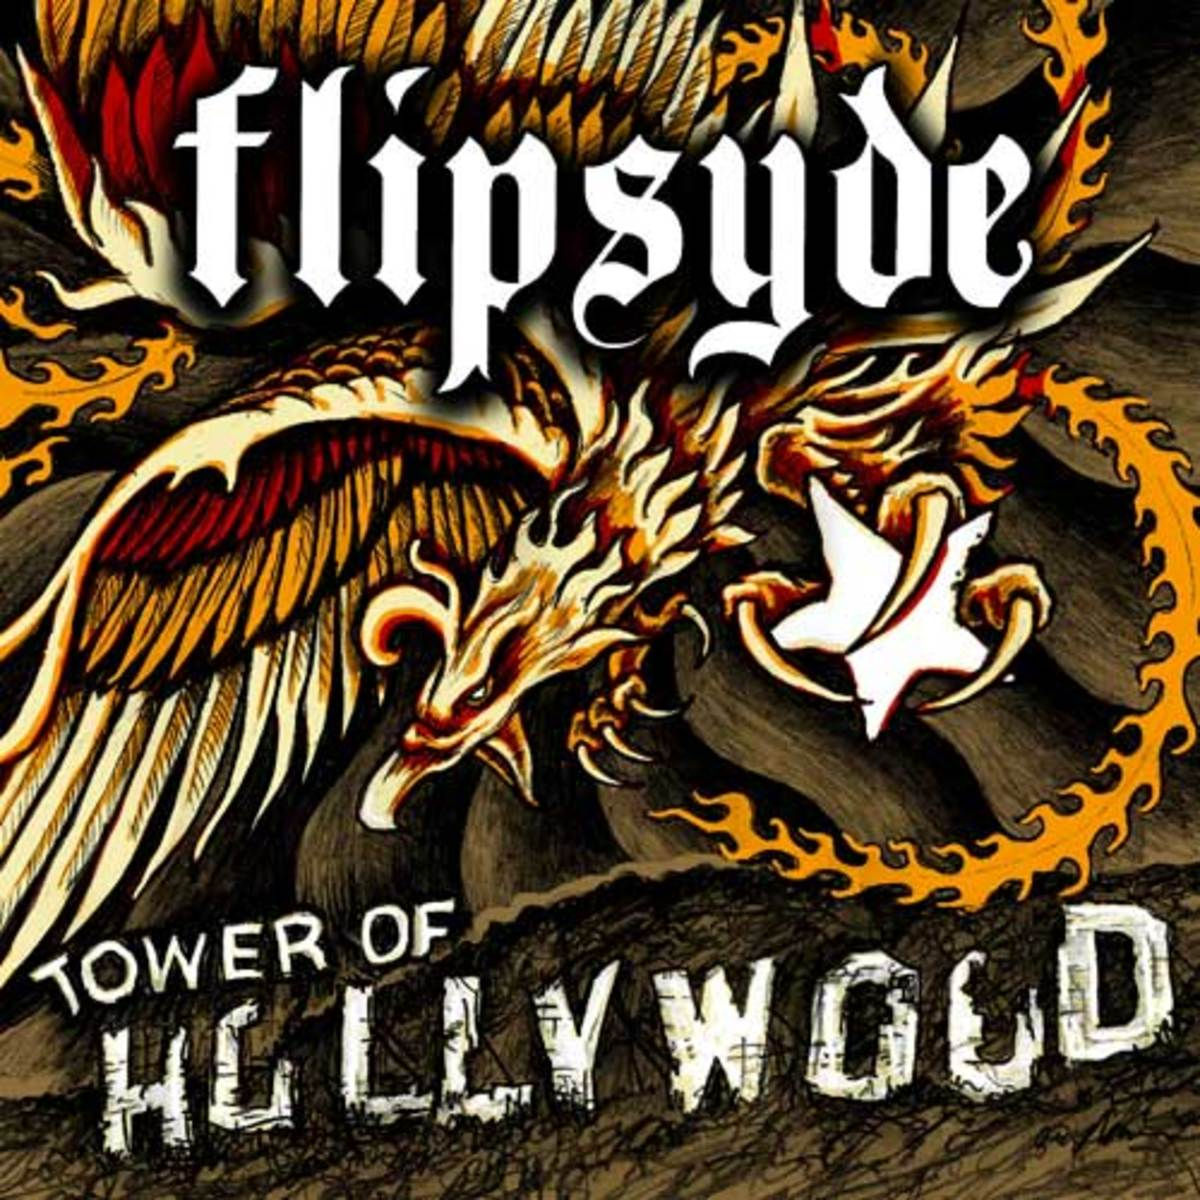 flipsyde-towerhollywood.jpg